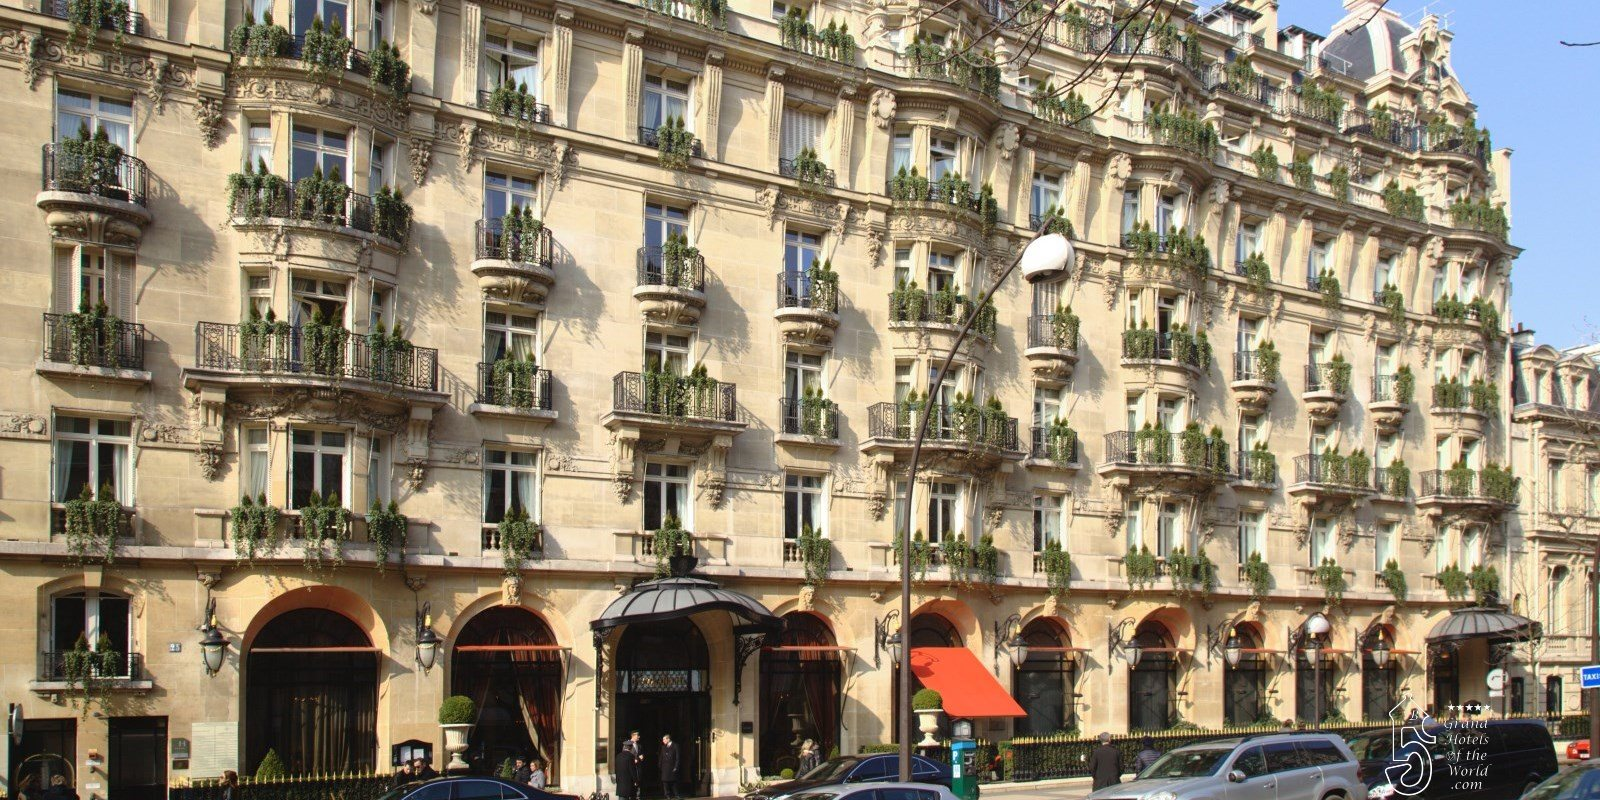 Hotel Plaza Athenée by Dorchester Collection